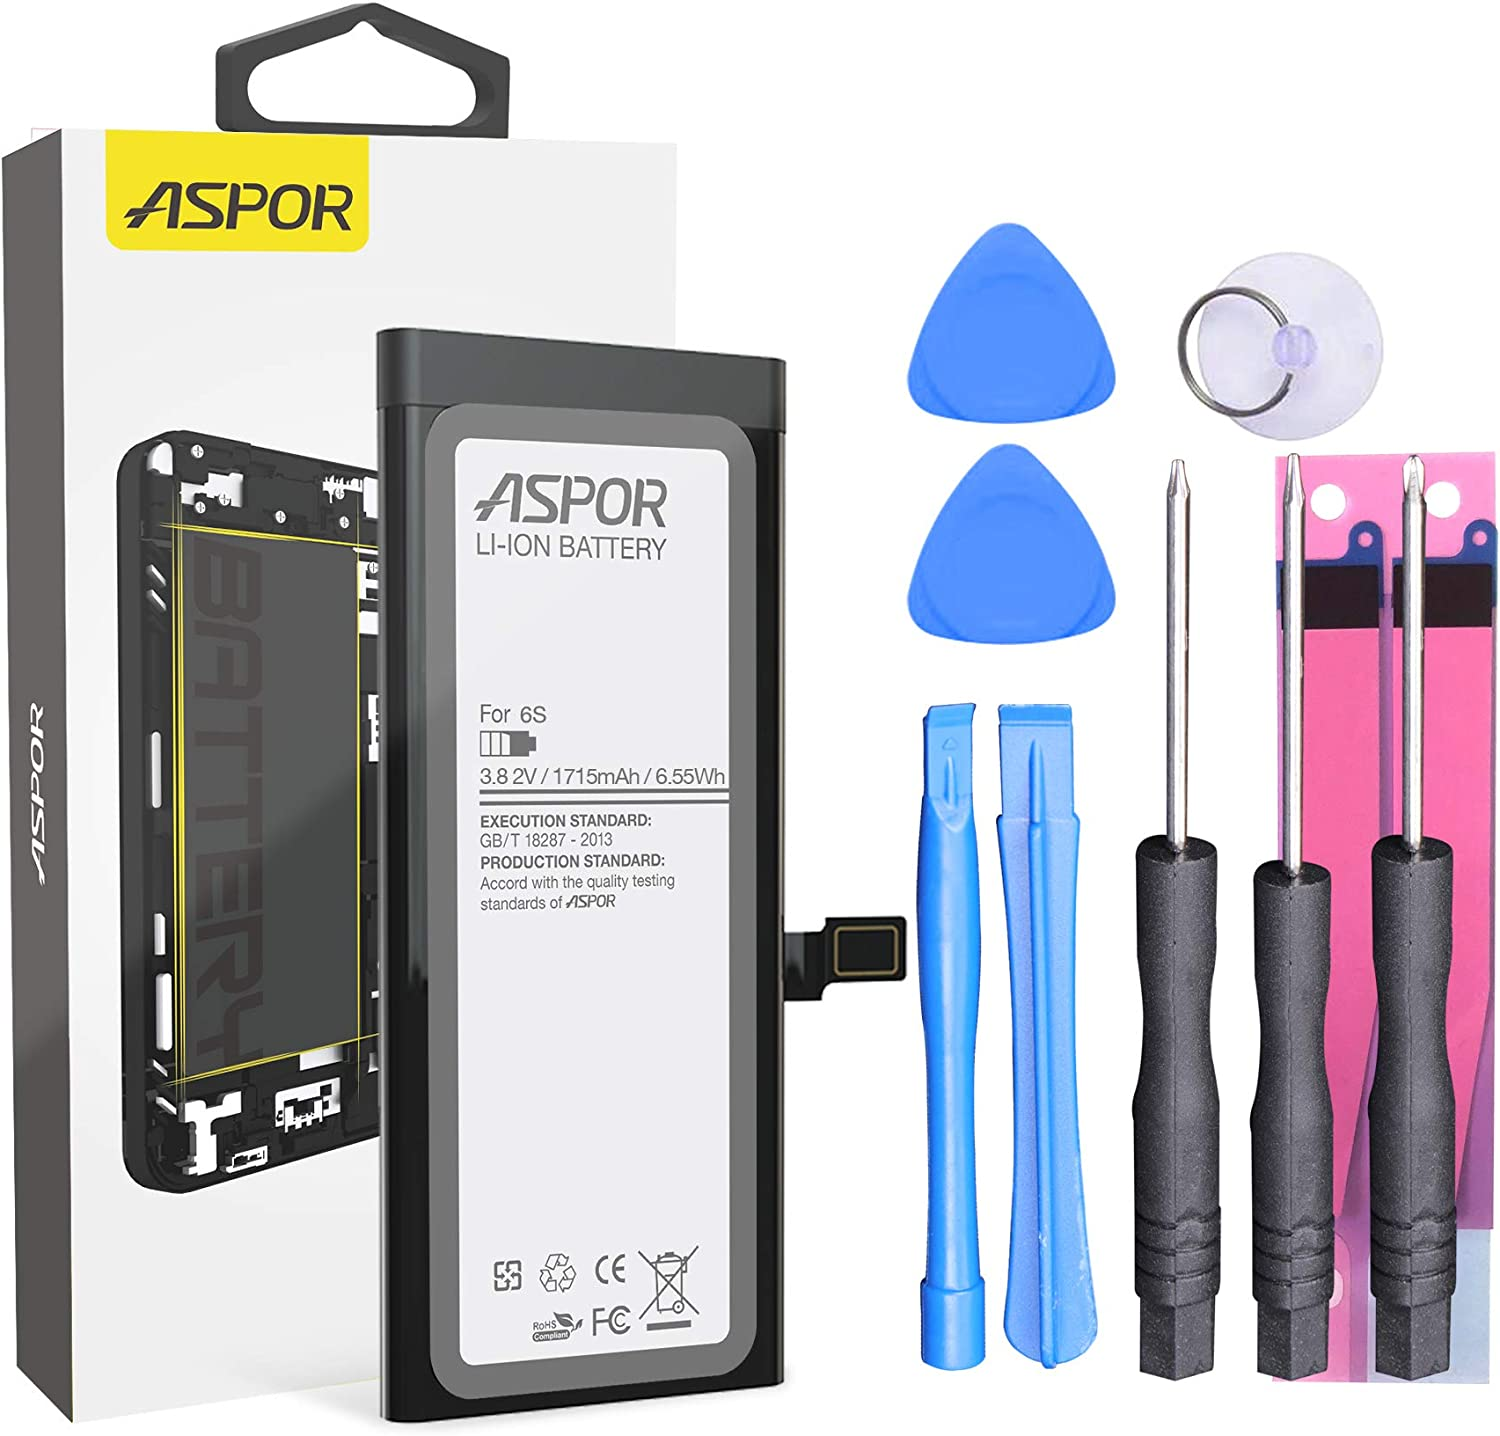 ASPOR Battery Replacement Compatible with iPhone 6S 1715 mAh Battery for iPhone 6S with Complete Repair Tool Kits & Adhesive Strips